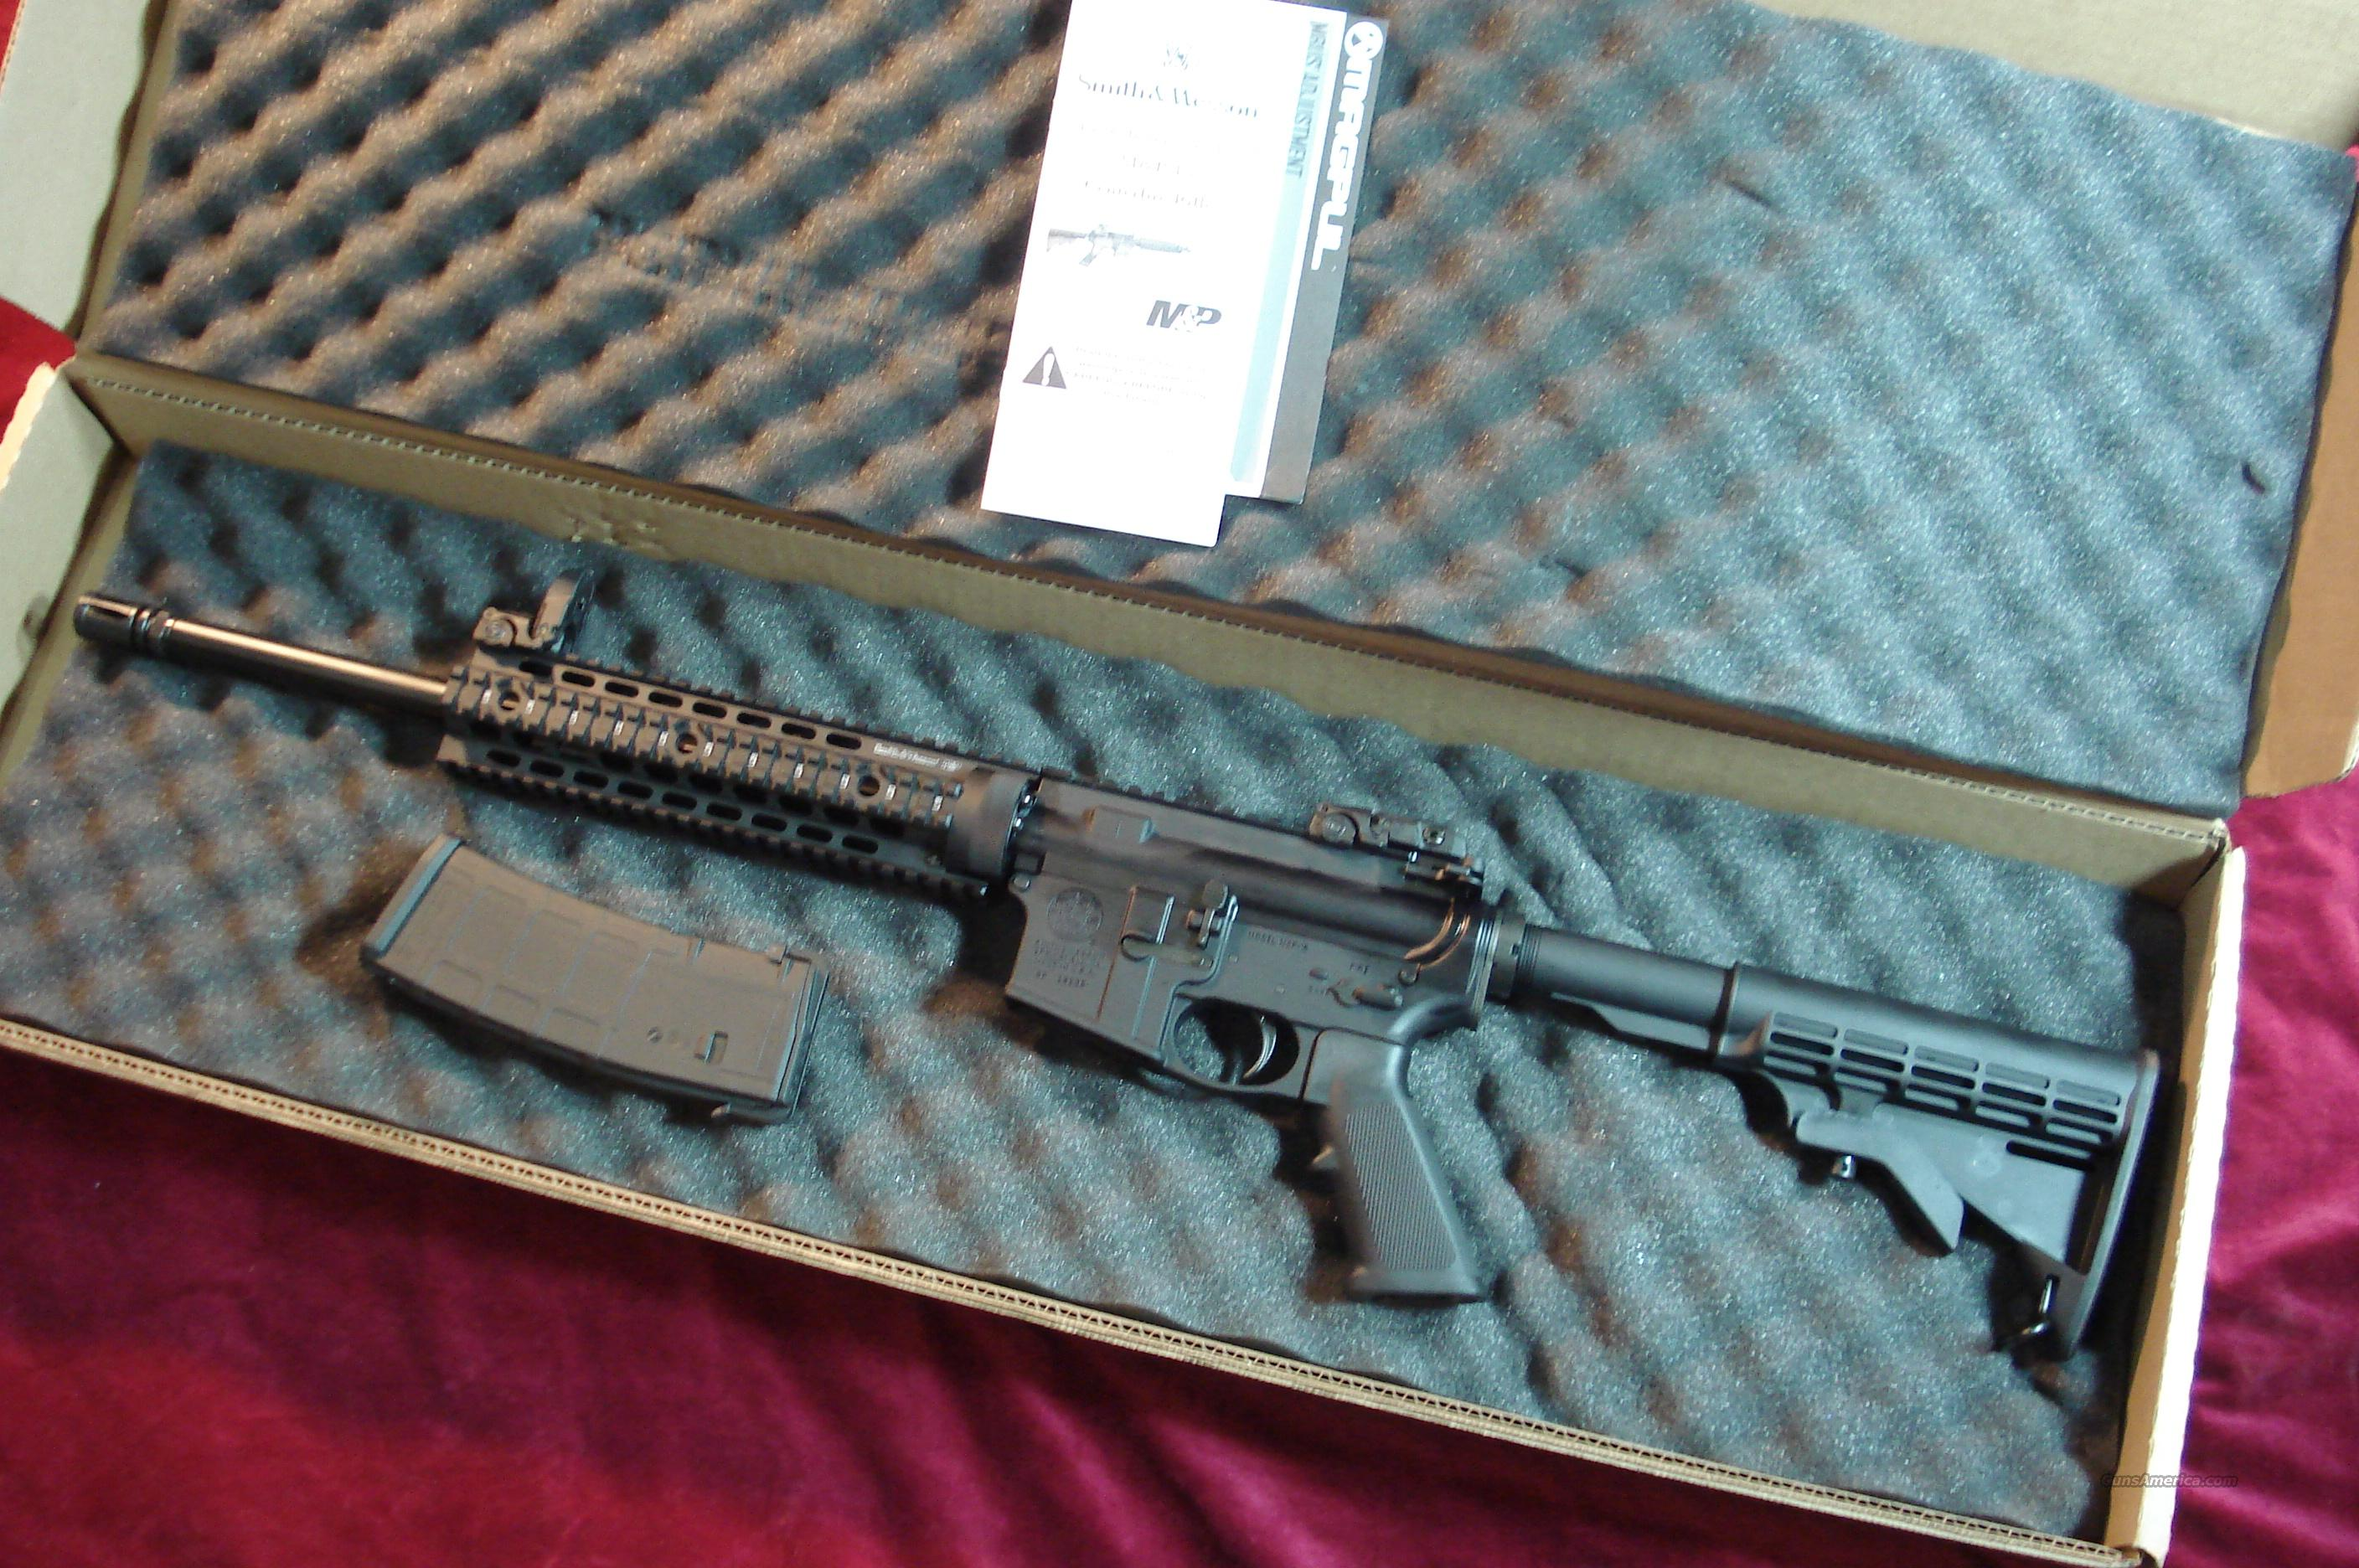 SMITH AND WESSON M&P 15T (TACTICAL) NEW   Guns > Rifles > Smith & Wesson Rifles > M&P